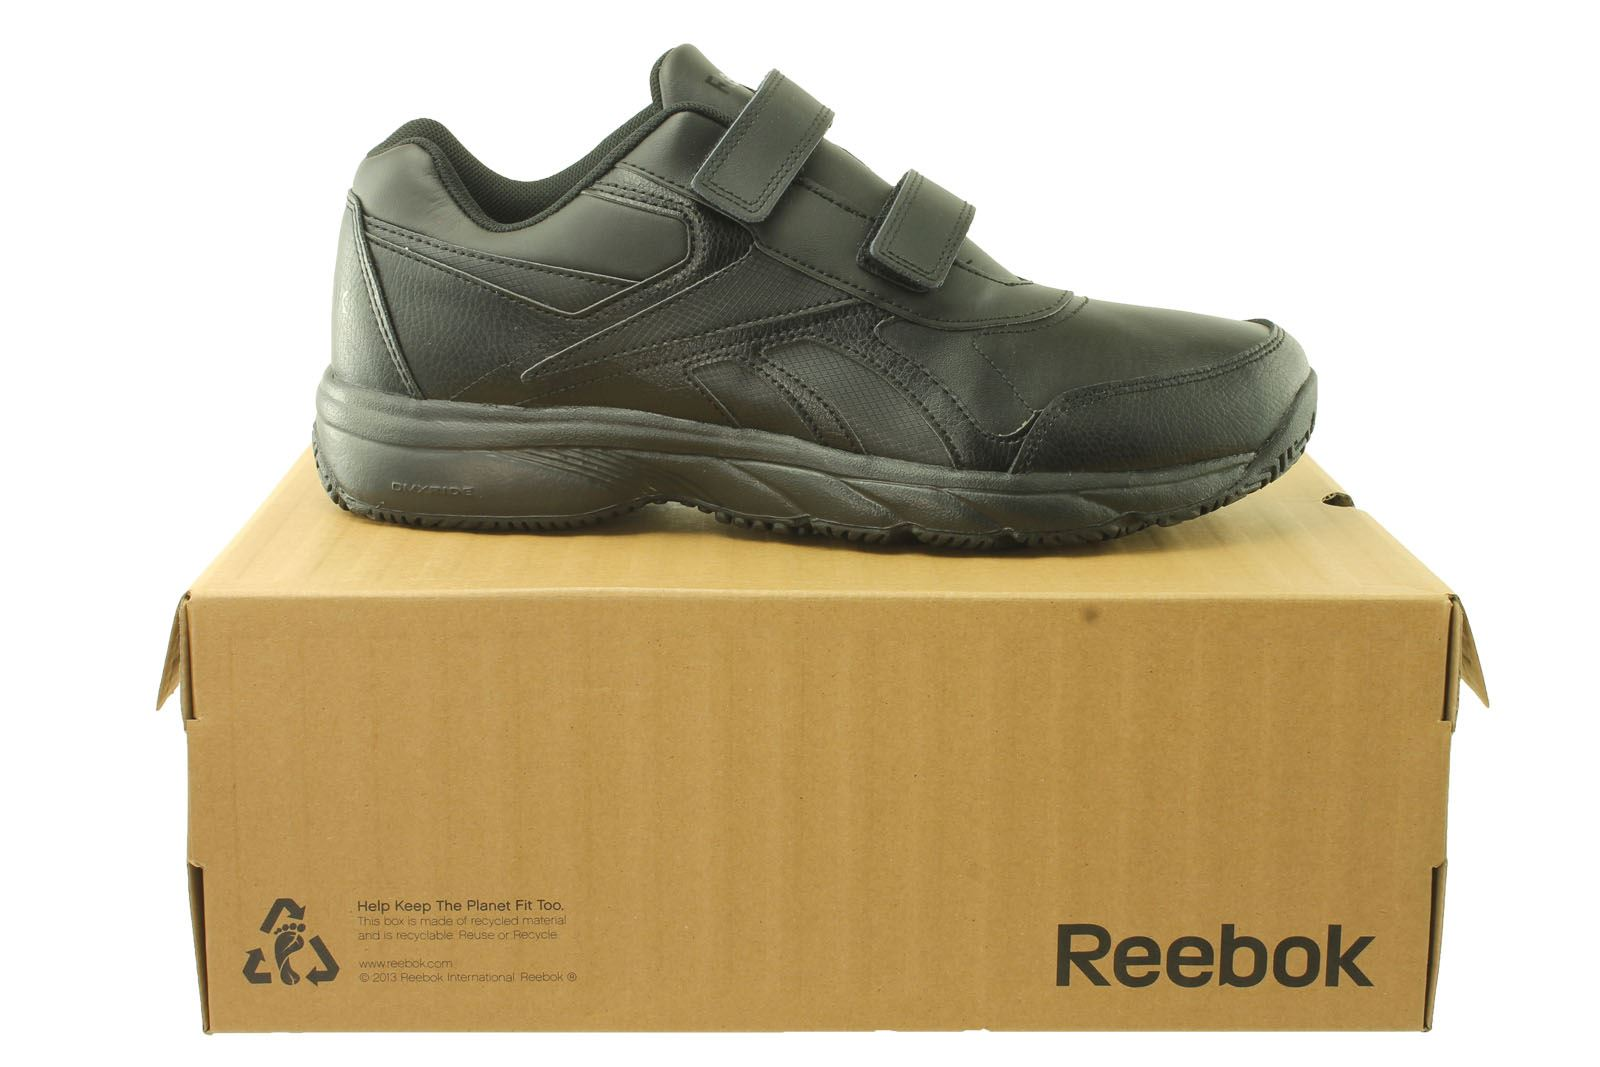 Reebok-Work-039-n-039-Cushion-KC-Mens-Trainers-Leather-CLEARANCE-PRICE Indexbild 15